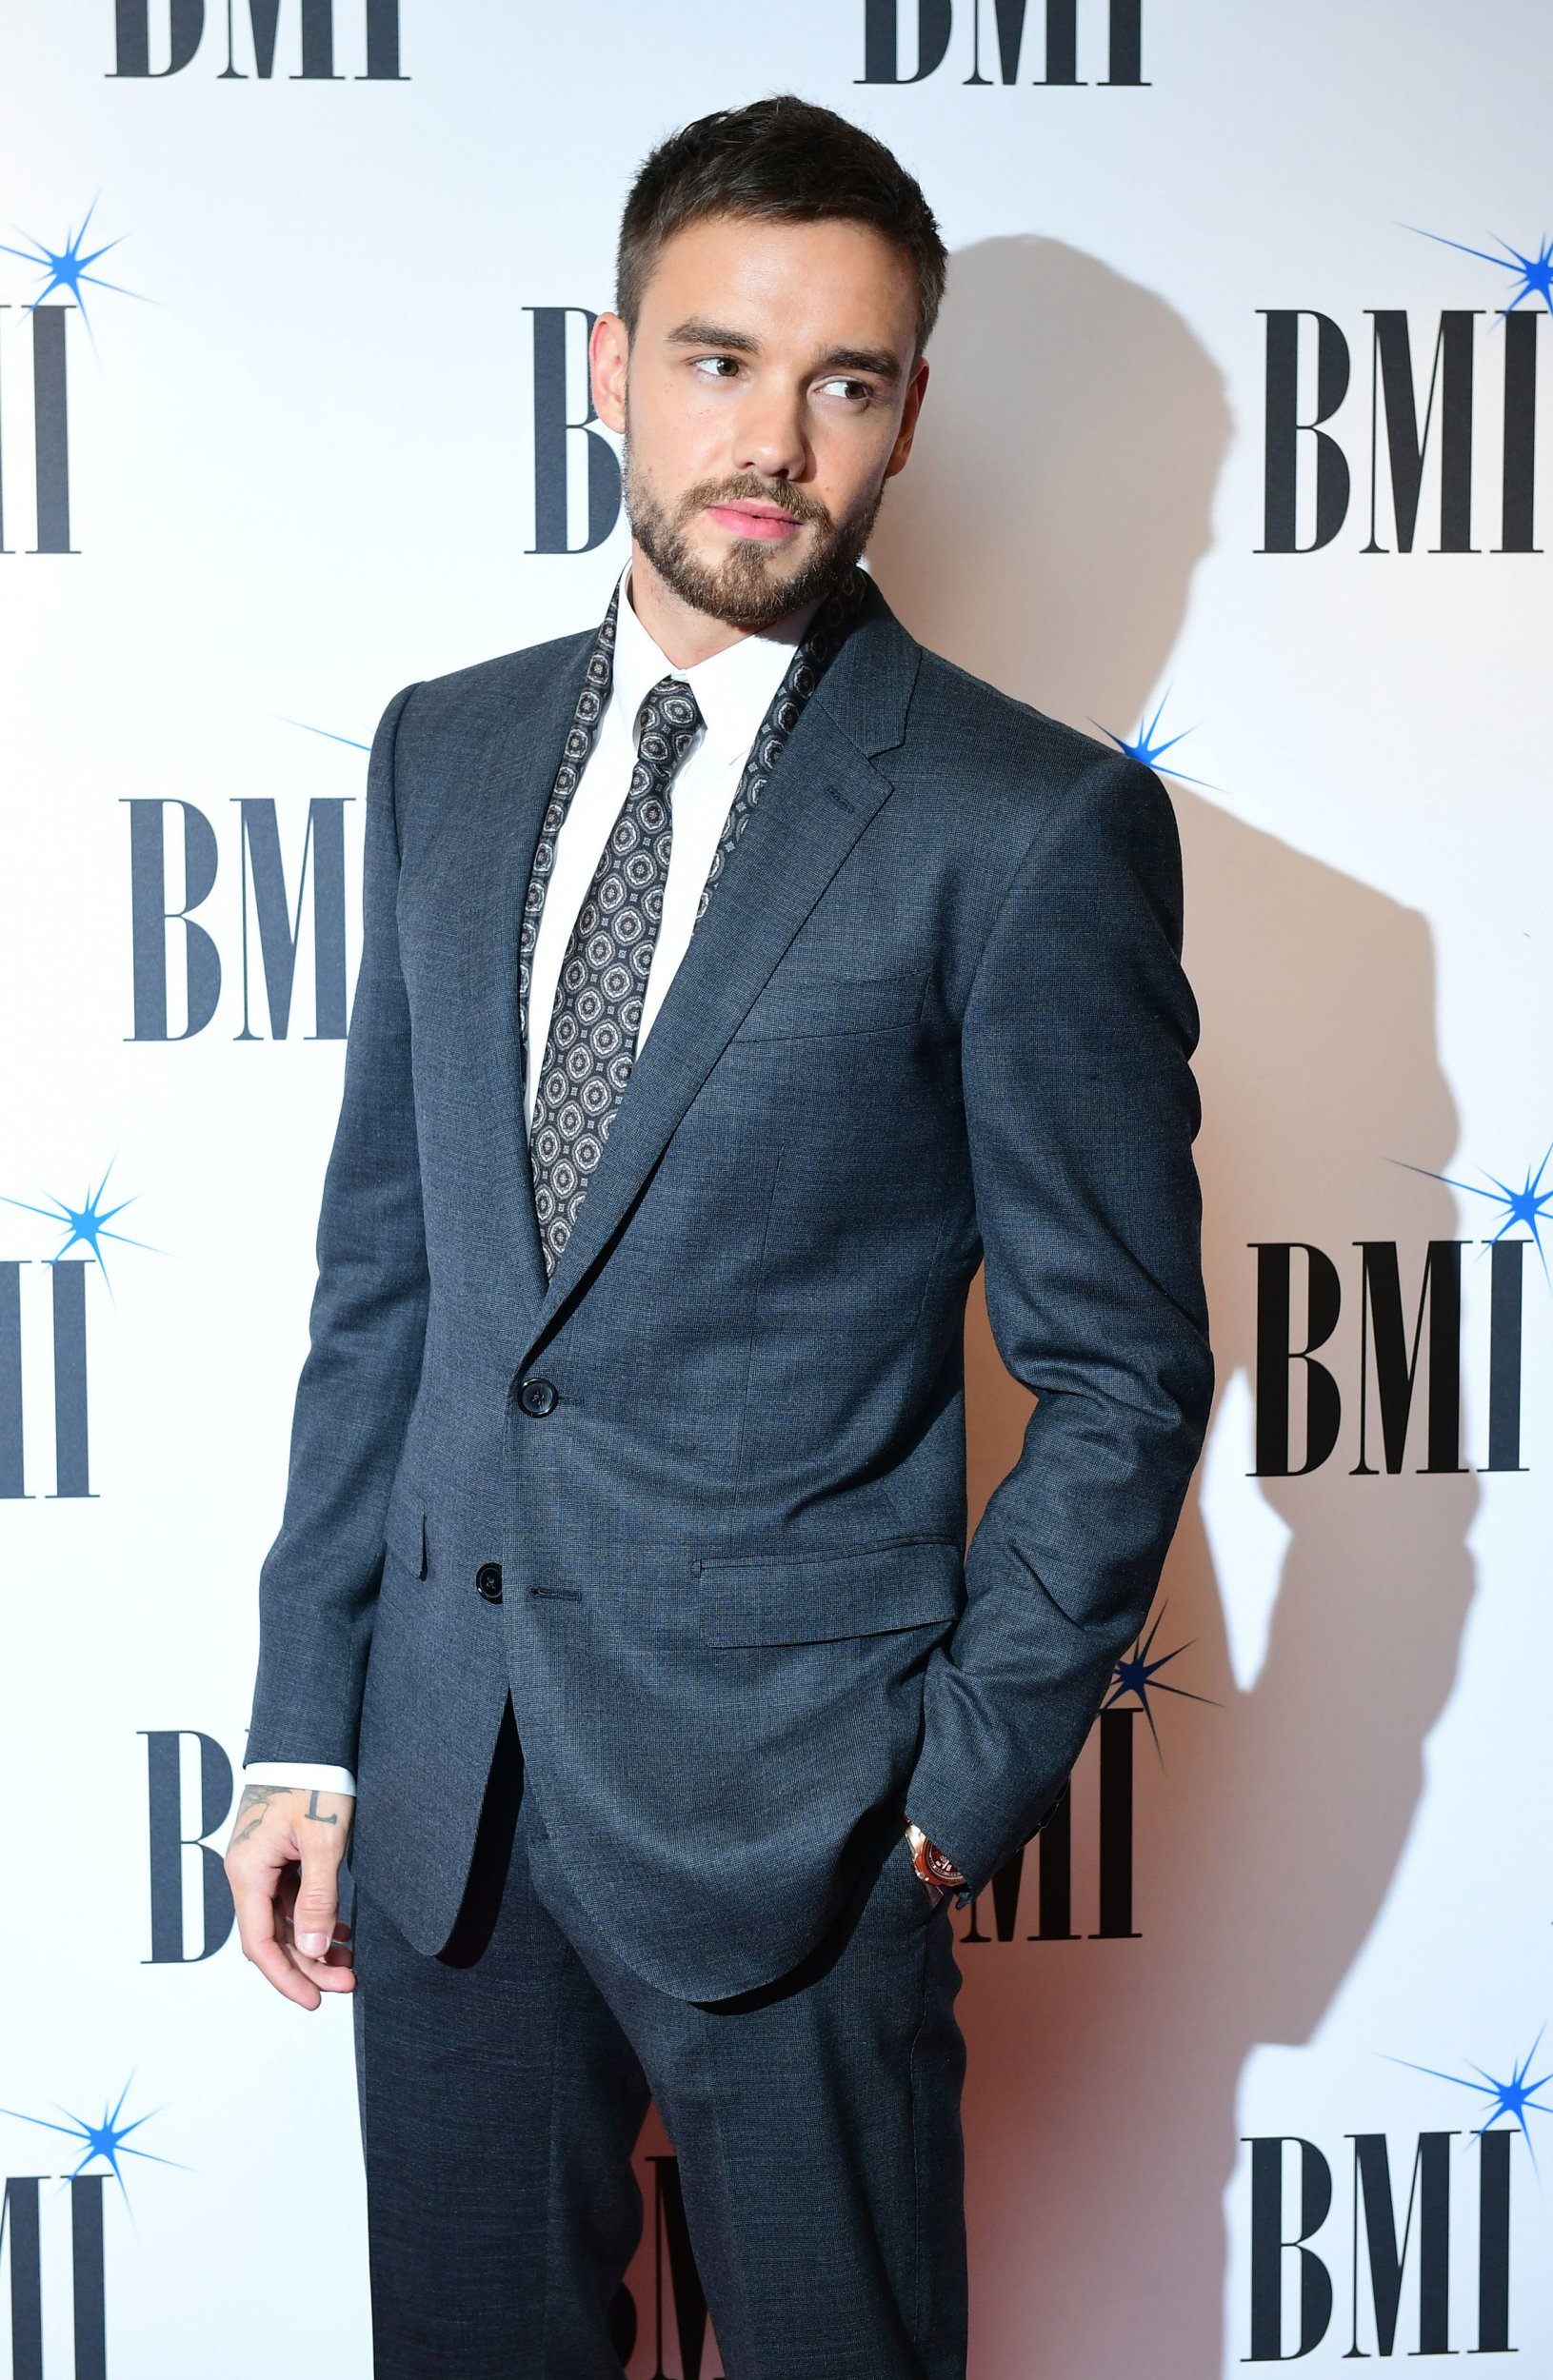 Liam Payne arriving for the BMI London Awards 2018 at the Dorchester Hotel, central London. PRESS ASSOCIATION Photo. Picture date: Monday October 1, 2018. Photo credit should read: Ian West/PA Wire